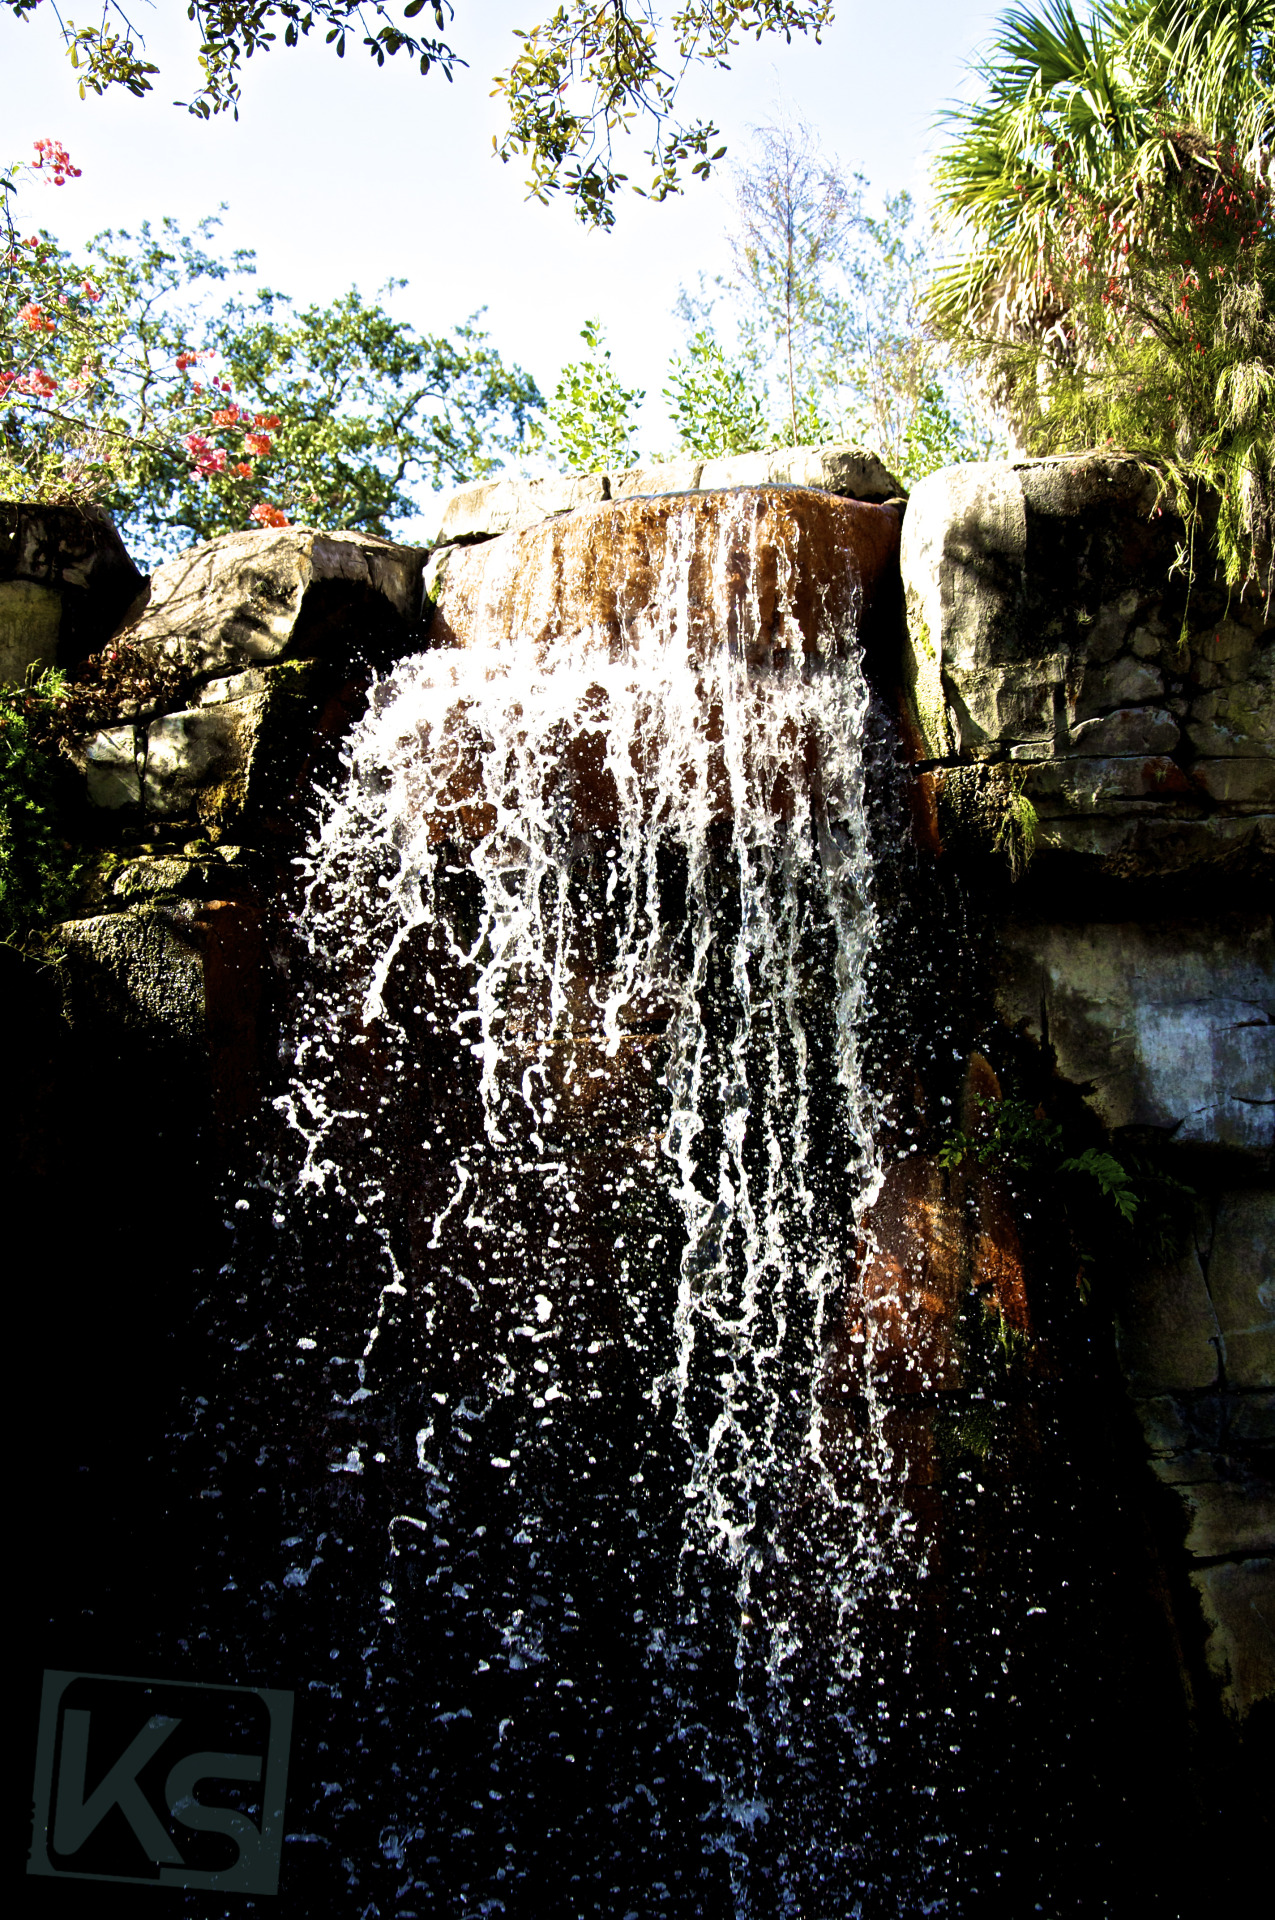 Waterfall IV - Lowry Park Zoo